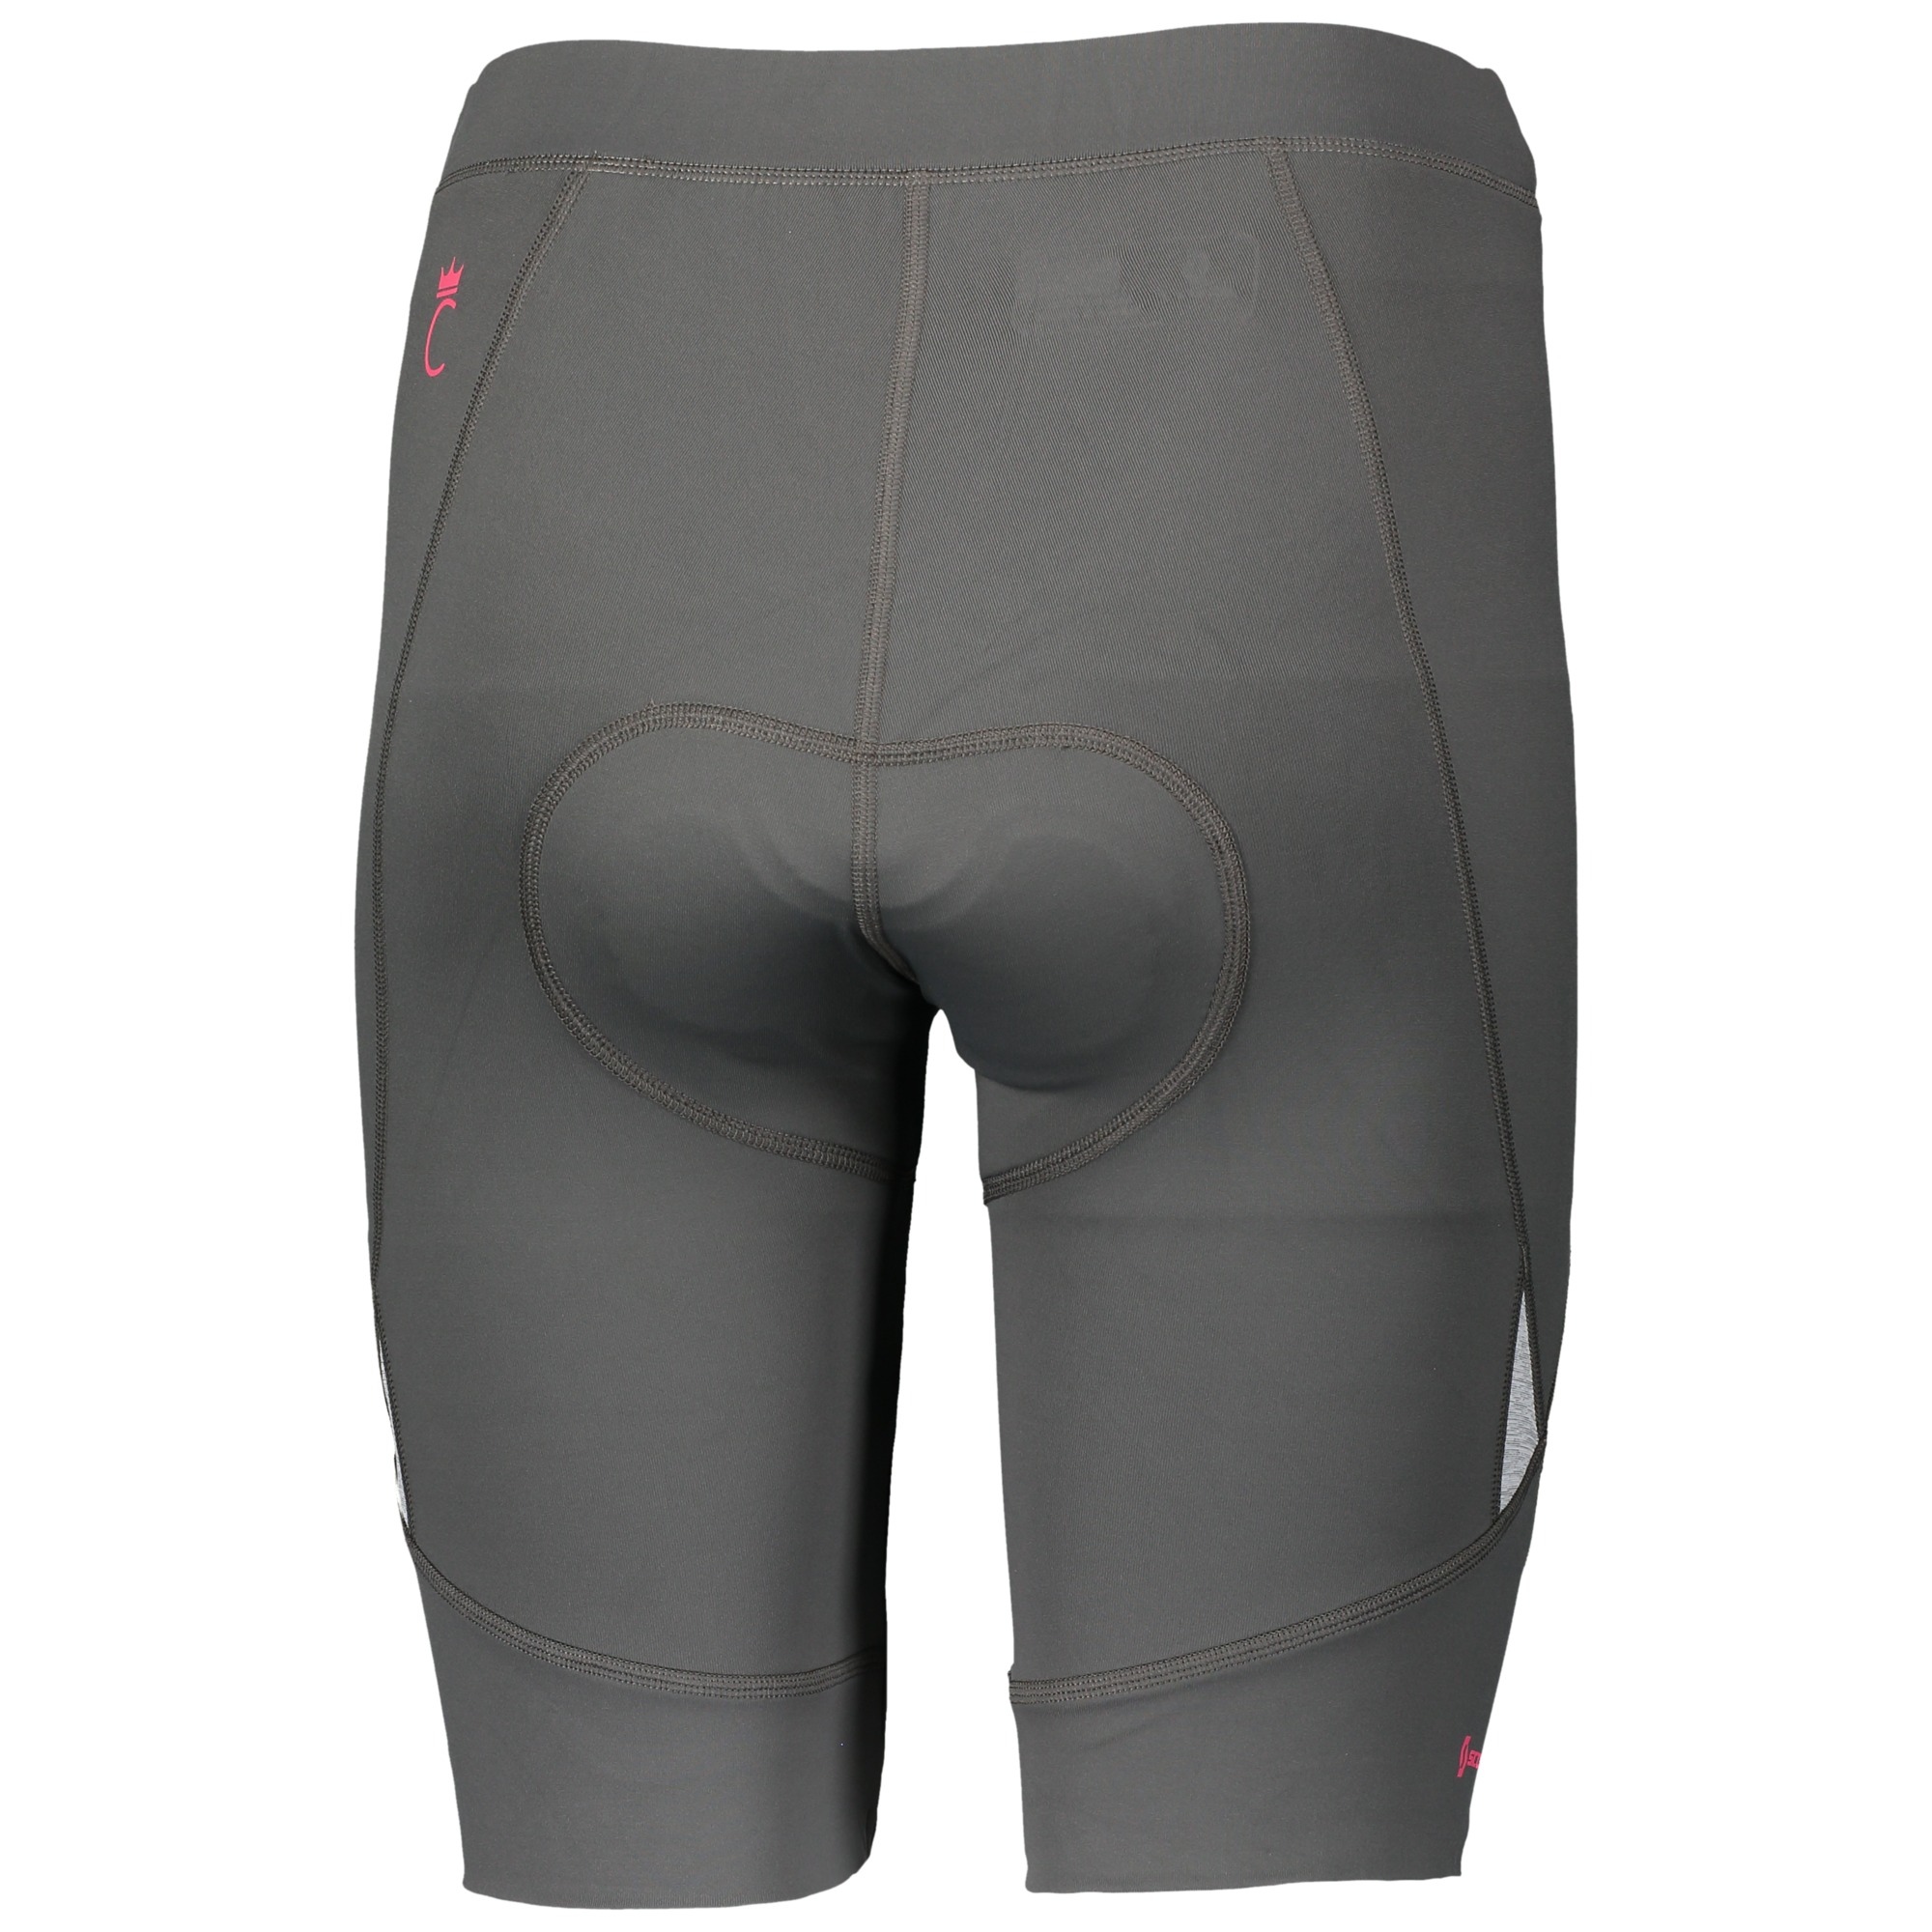 SCOTT Endurance 10 +++ Women's Shorts